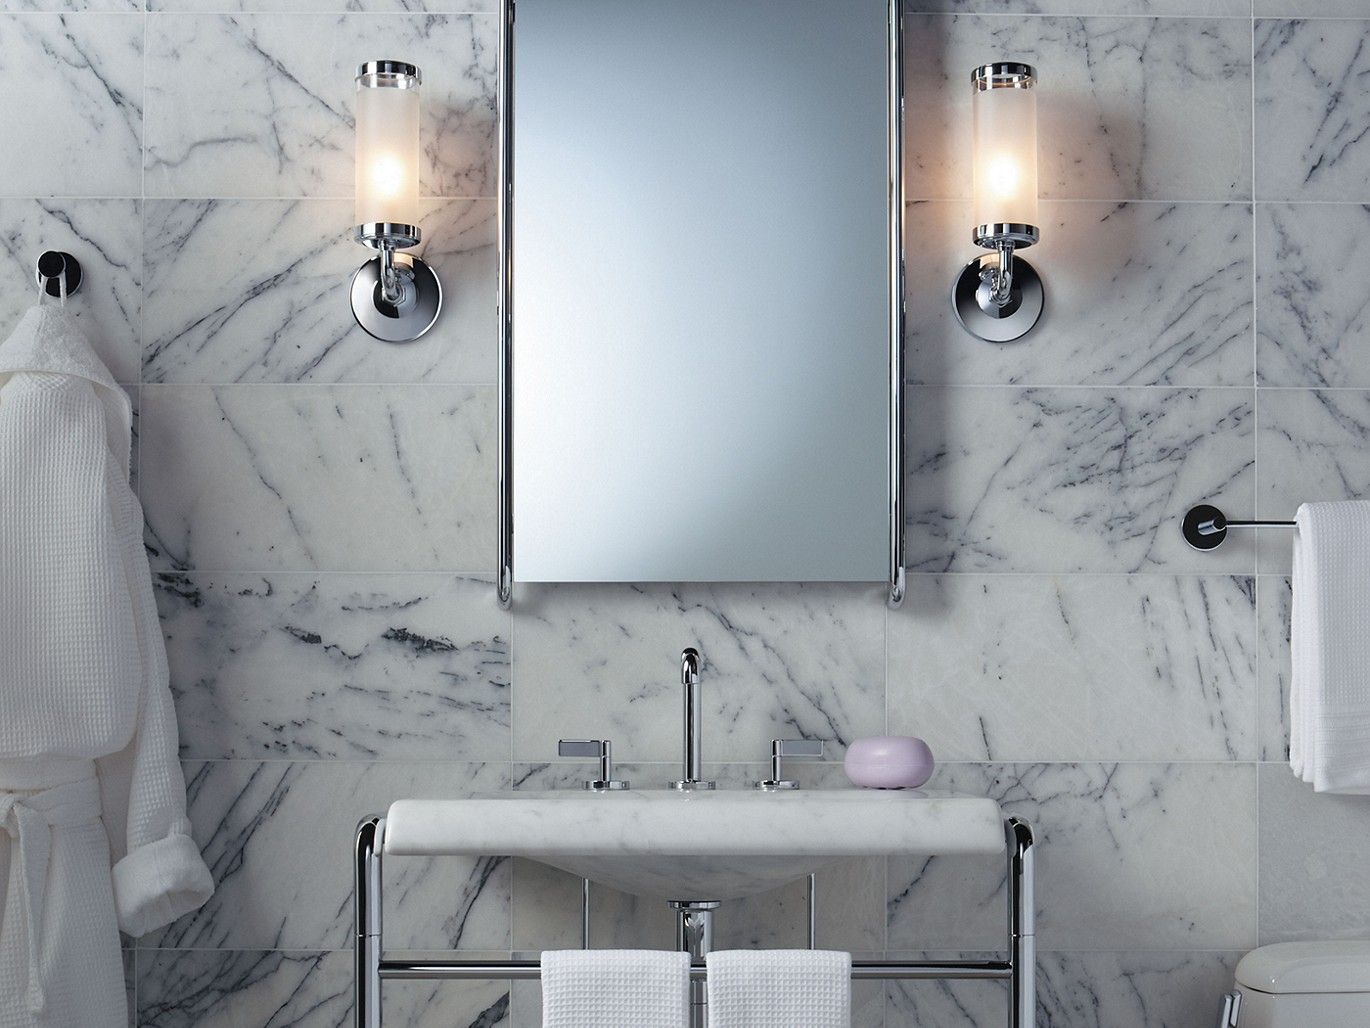 One Mirror By KALLISTA U2013 With Its Soft Curves And Sleek Form, The One Mirror